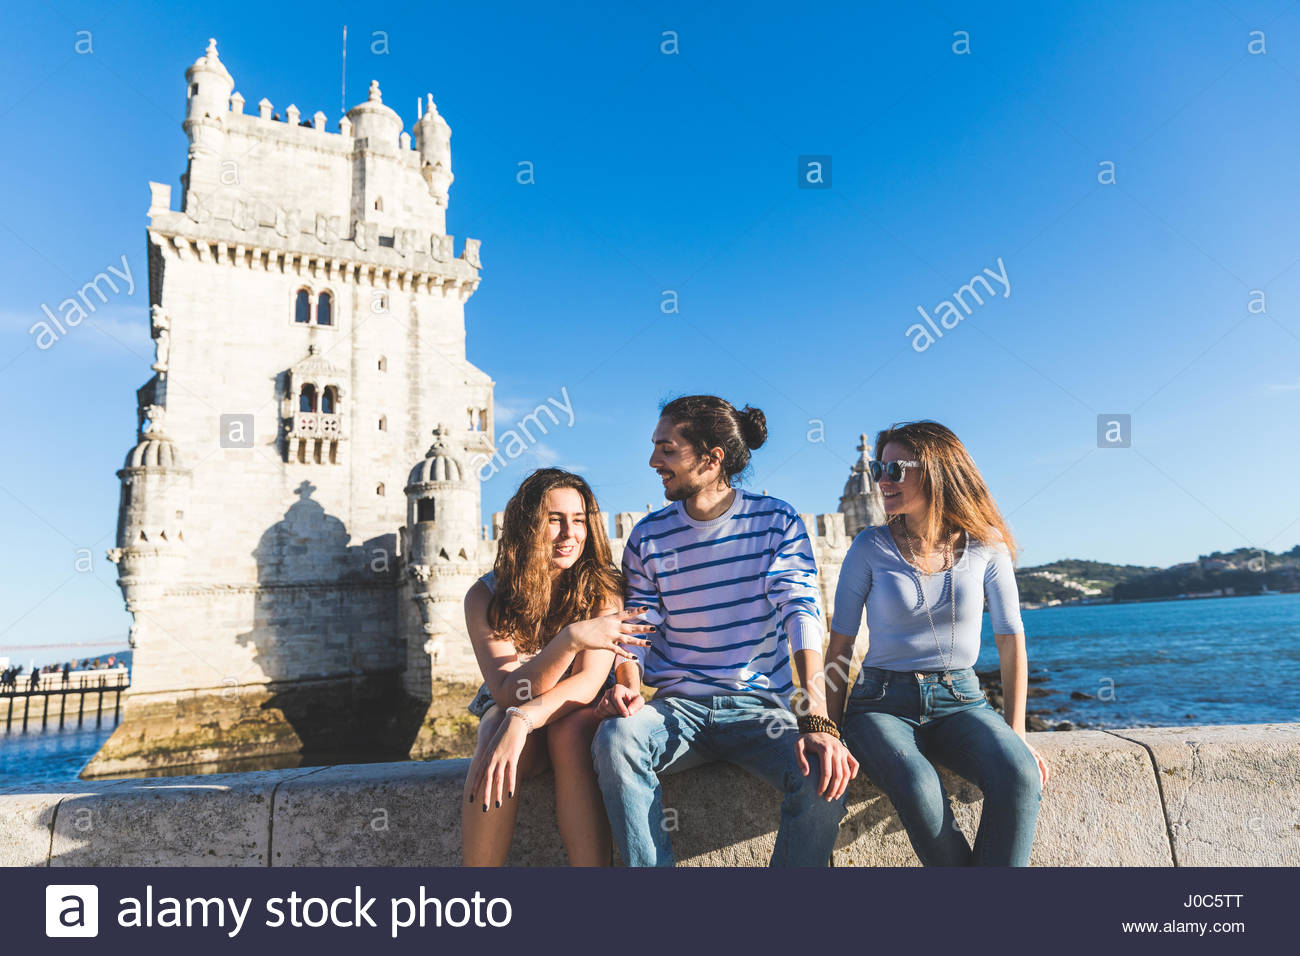 Three friends, sitting on wall by sea, Belem Tower in background, Lisbon, Portugal - Stock Image